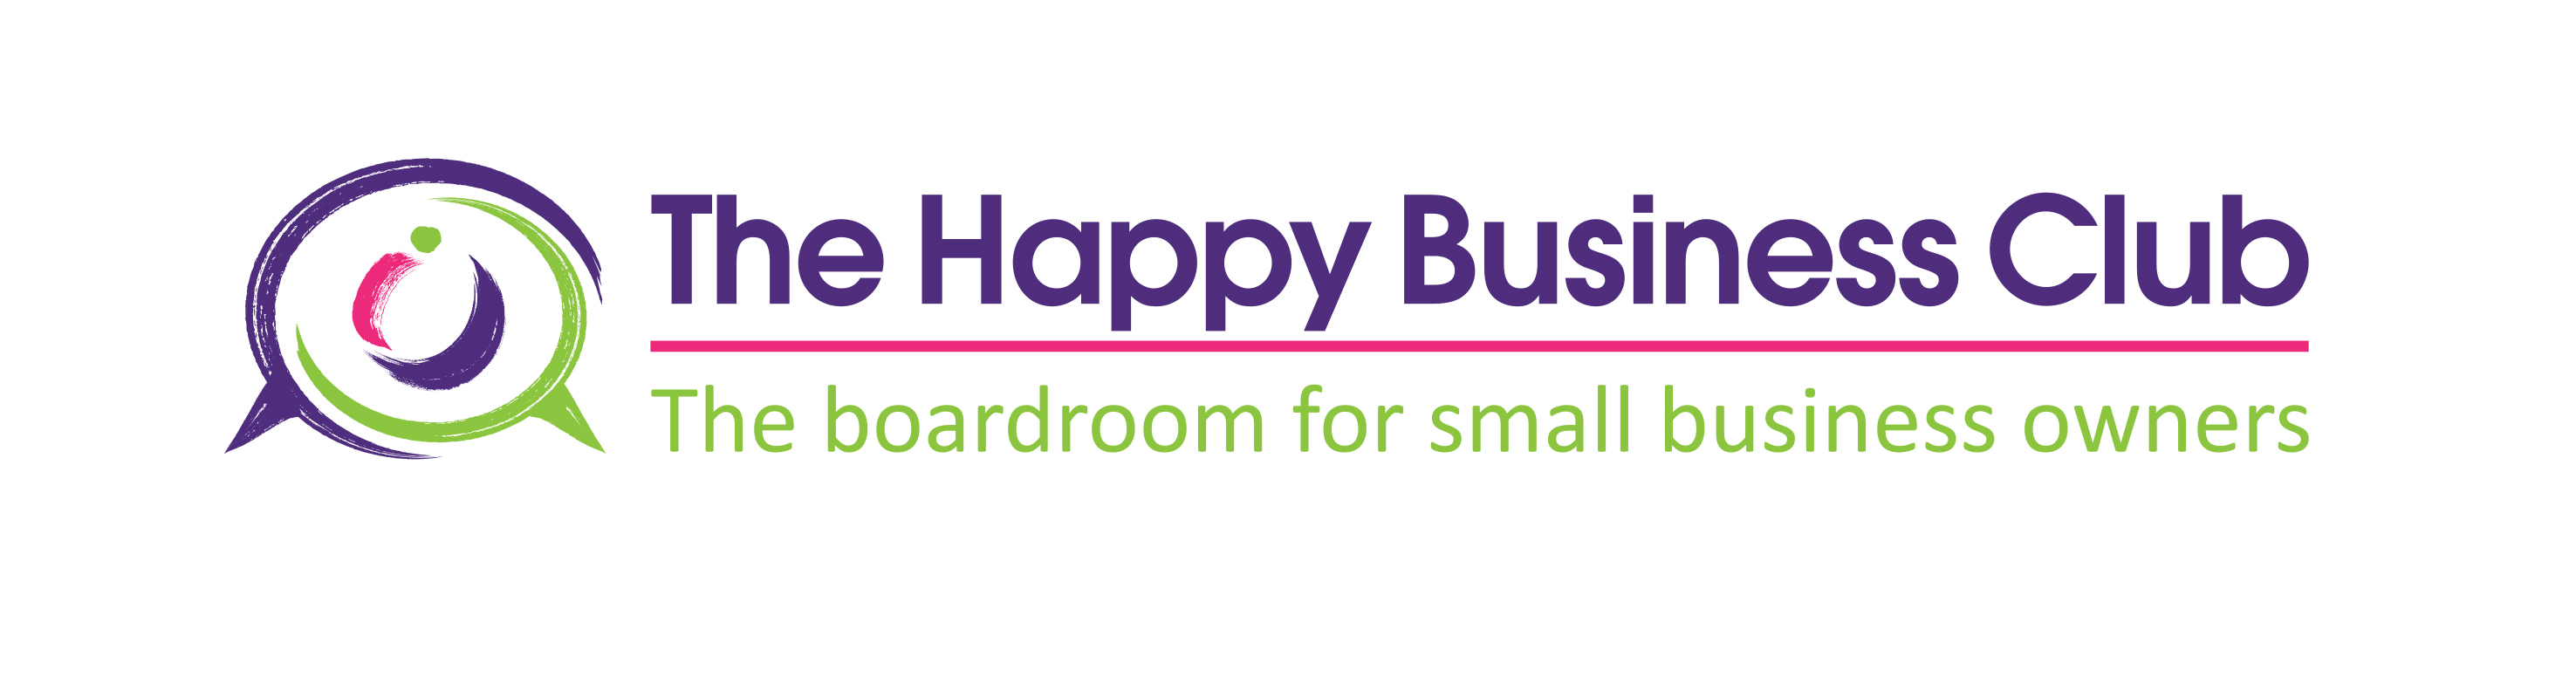 Happy Business Club logo